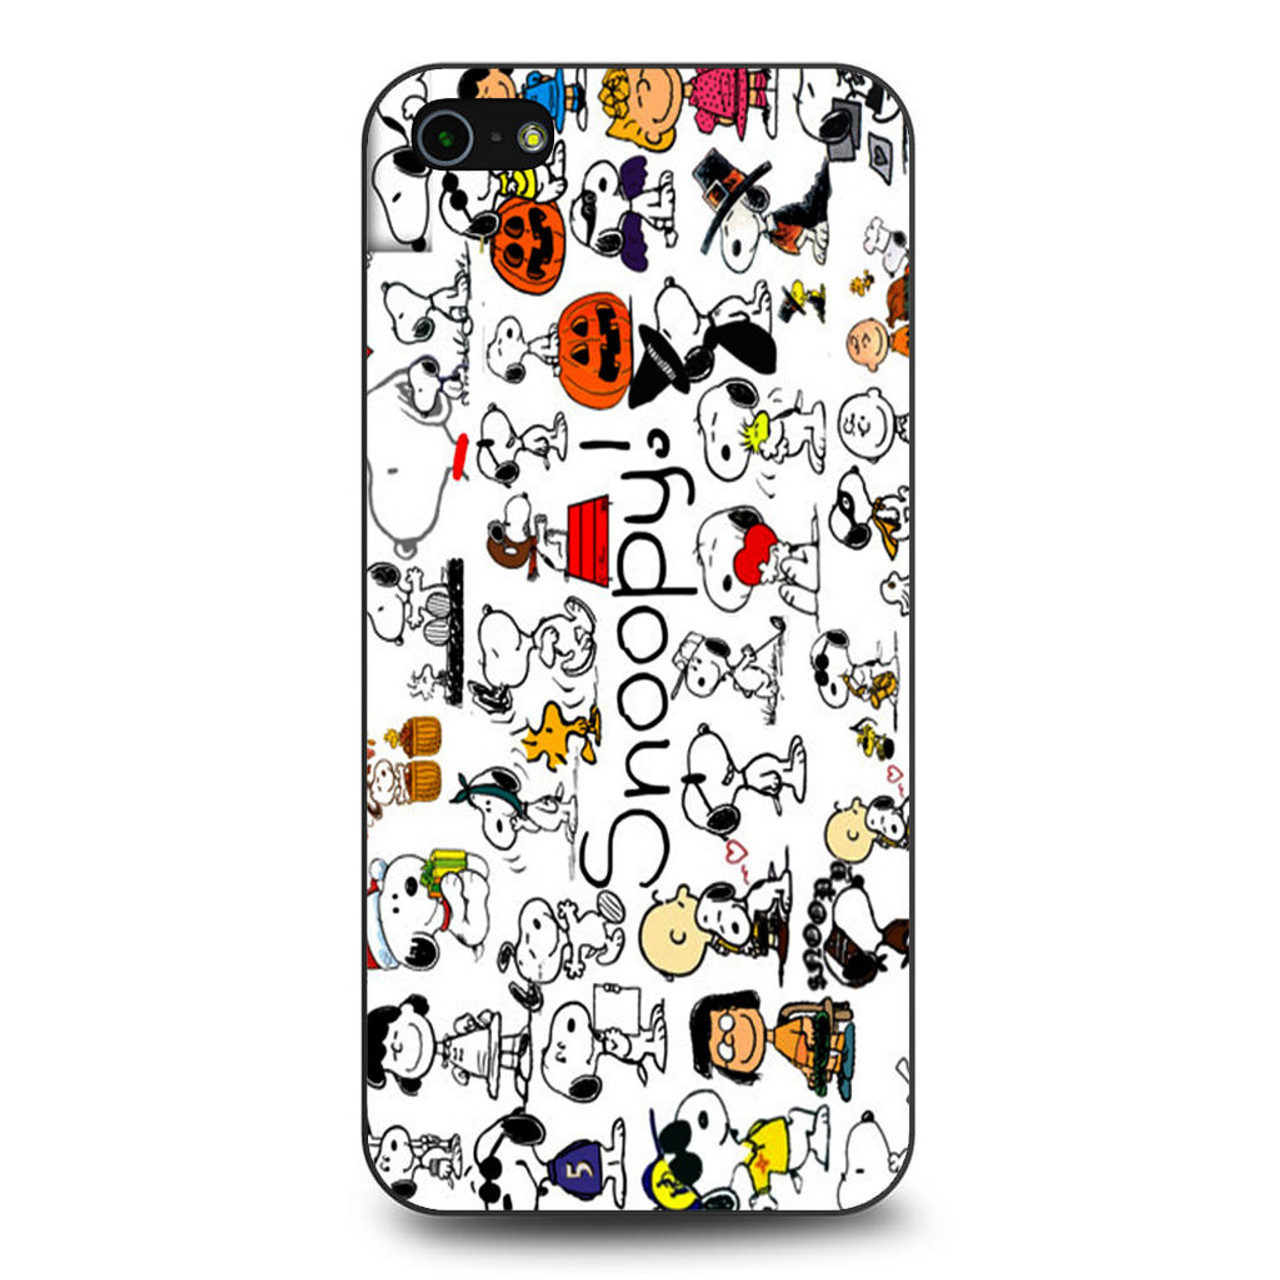 timeless design e8cae 38cec Snoopy Collage iPhone 5/5S/SE Case